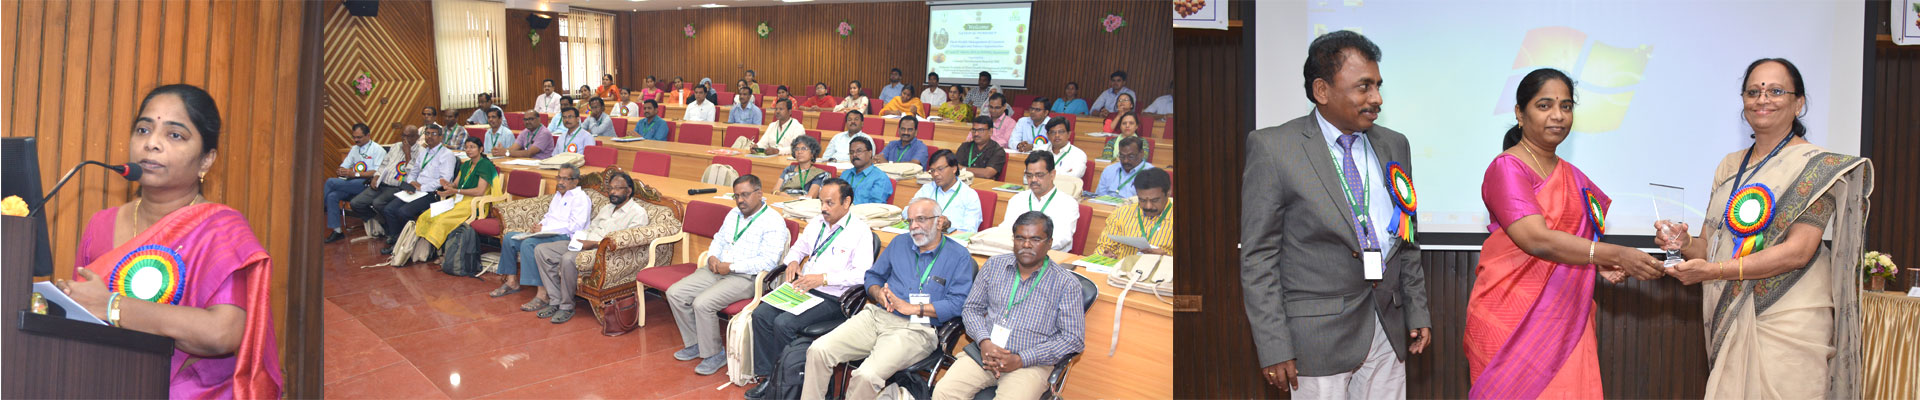 National Workshop on Plant Health Management of Coconut at NIPHM